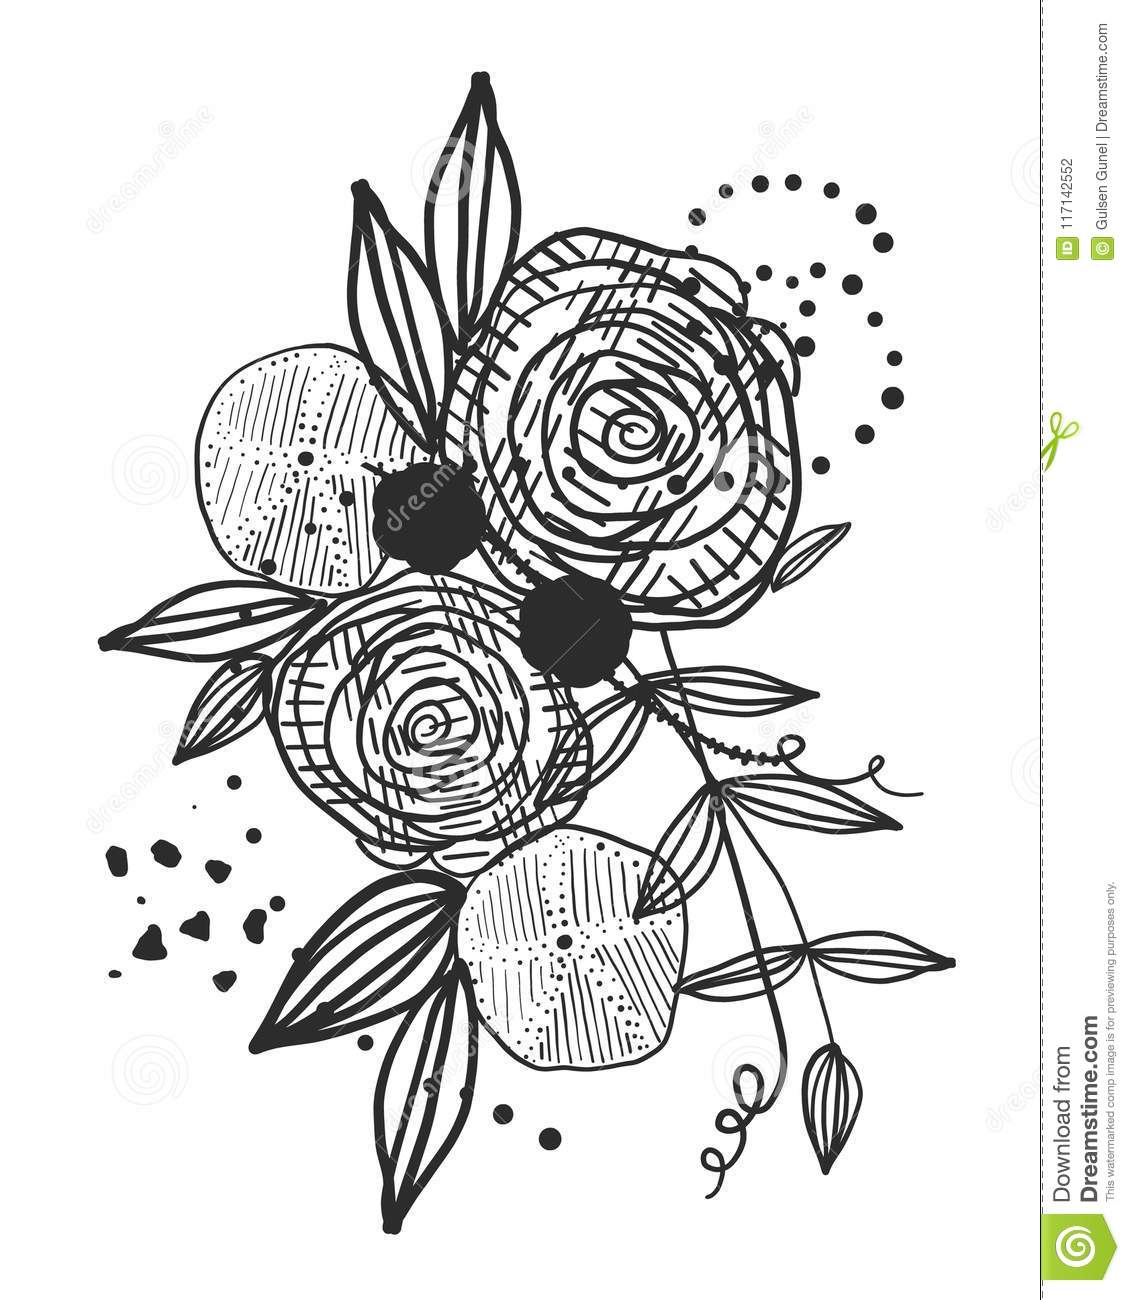 summer time abstract black flowers naturetheme abstract rose silhouette flowerabstract tattoo design